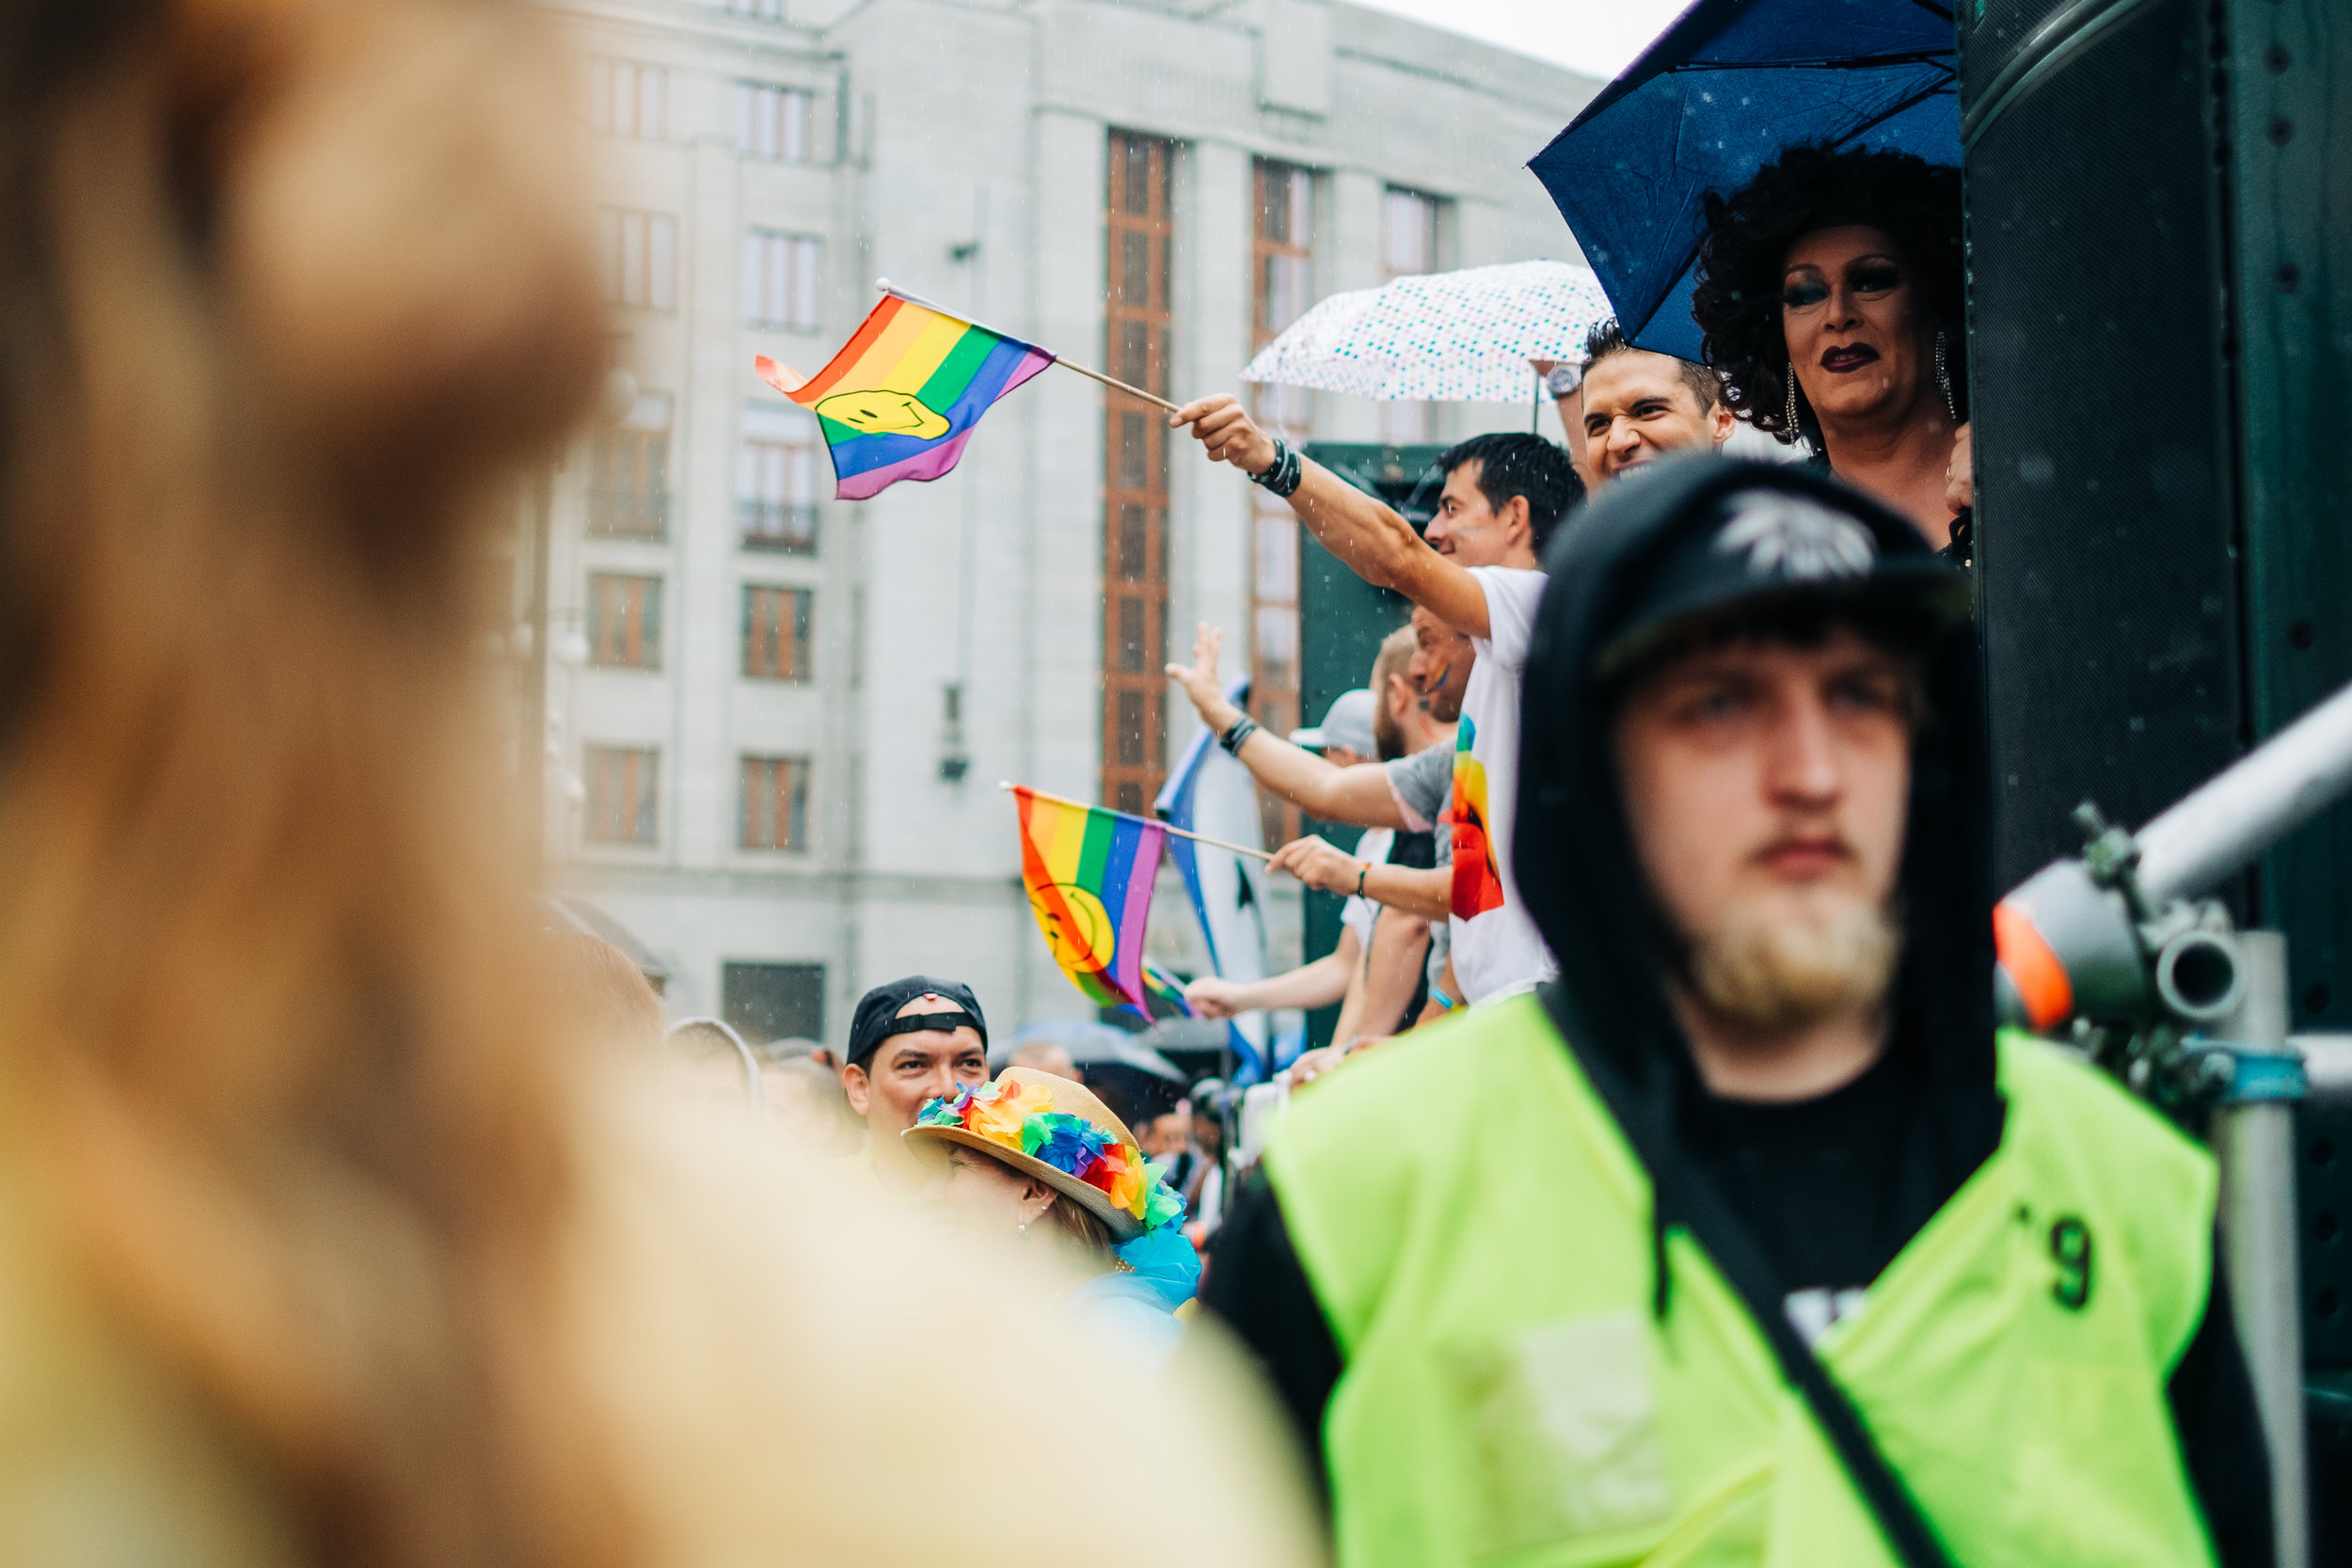 Prague Pride 2019 (29 of 47).jpg